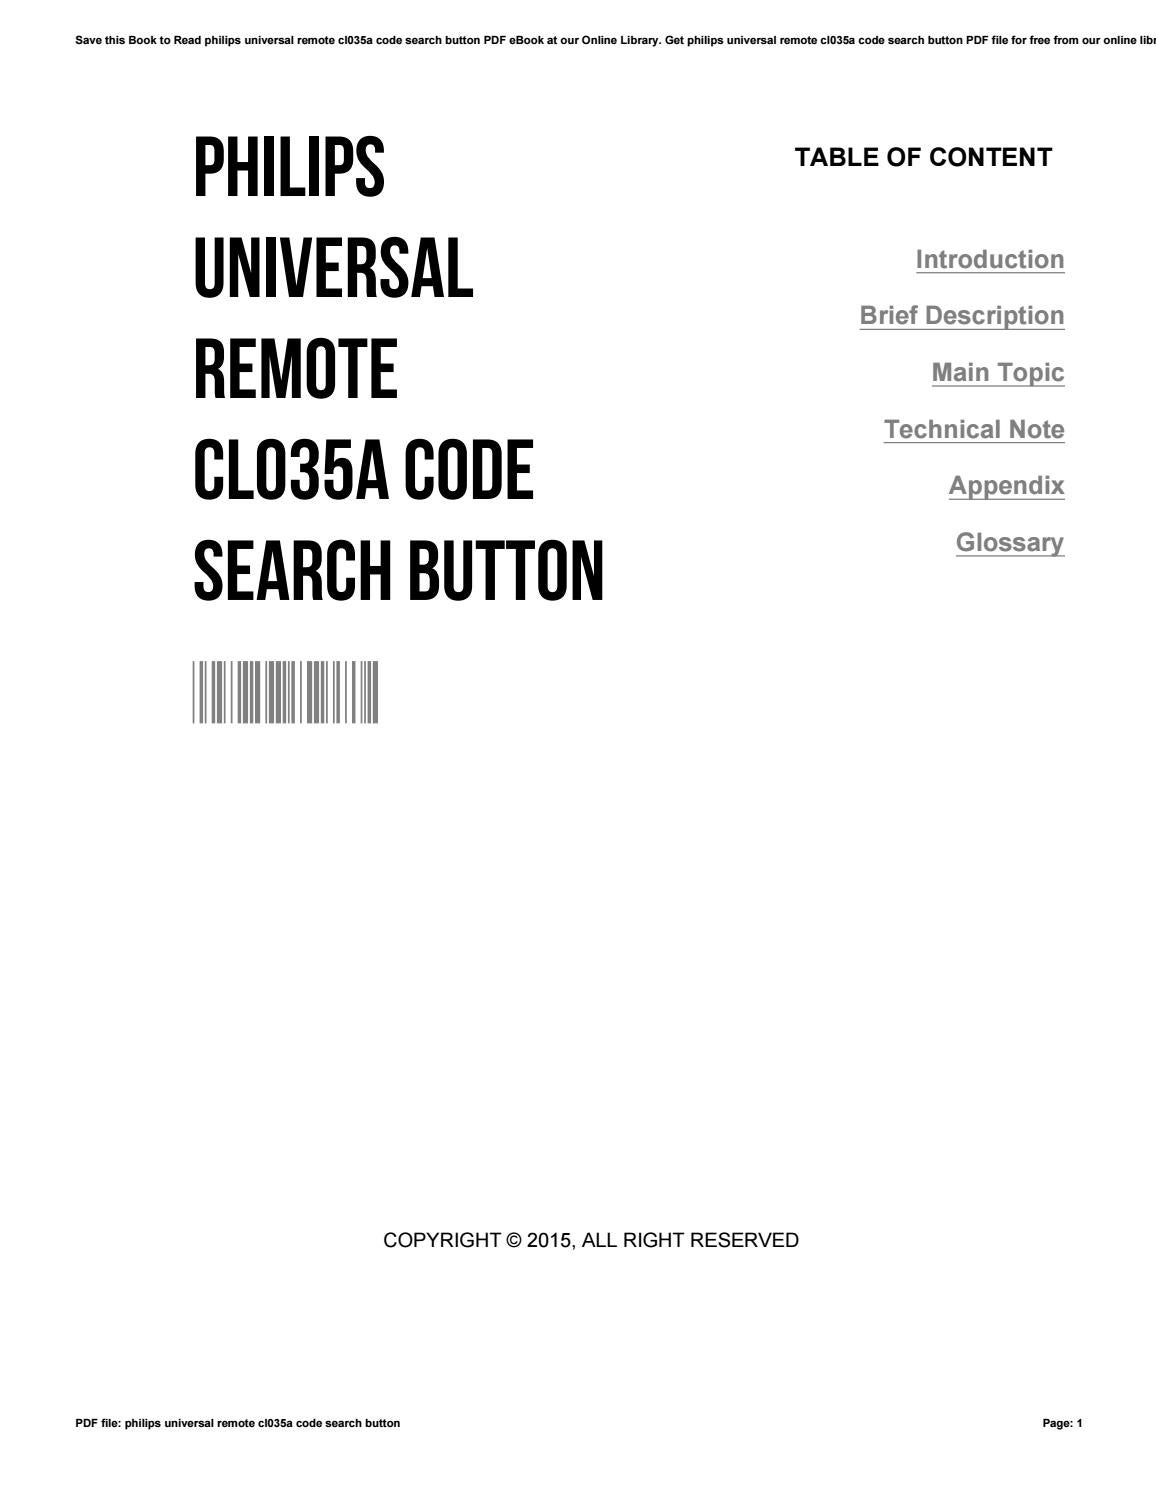 Philips universal remote cl035a code search button by